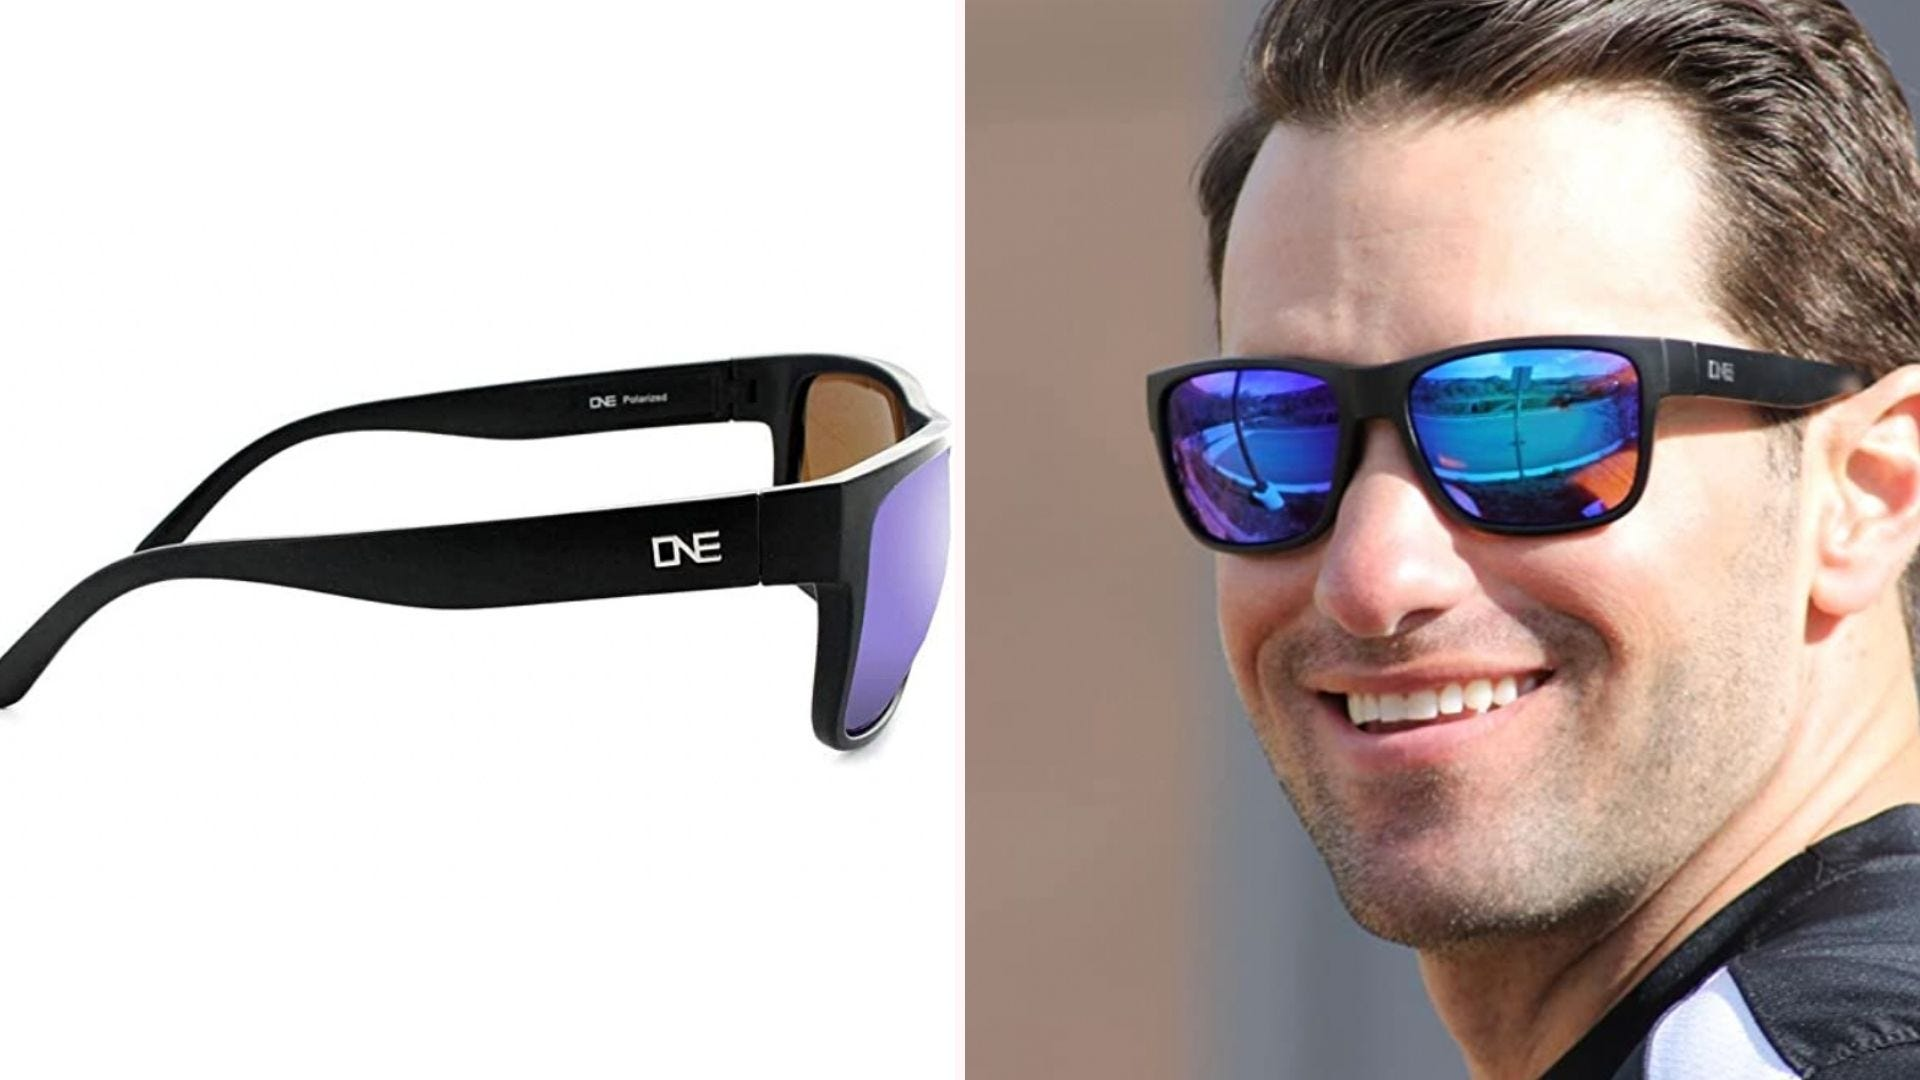 a pair of sunglasses with blue lenses shown as a side view and on a man's face